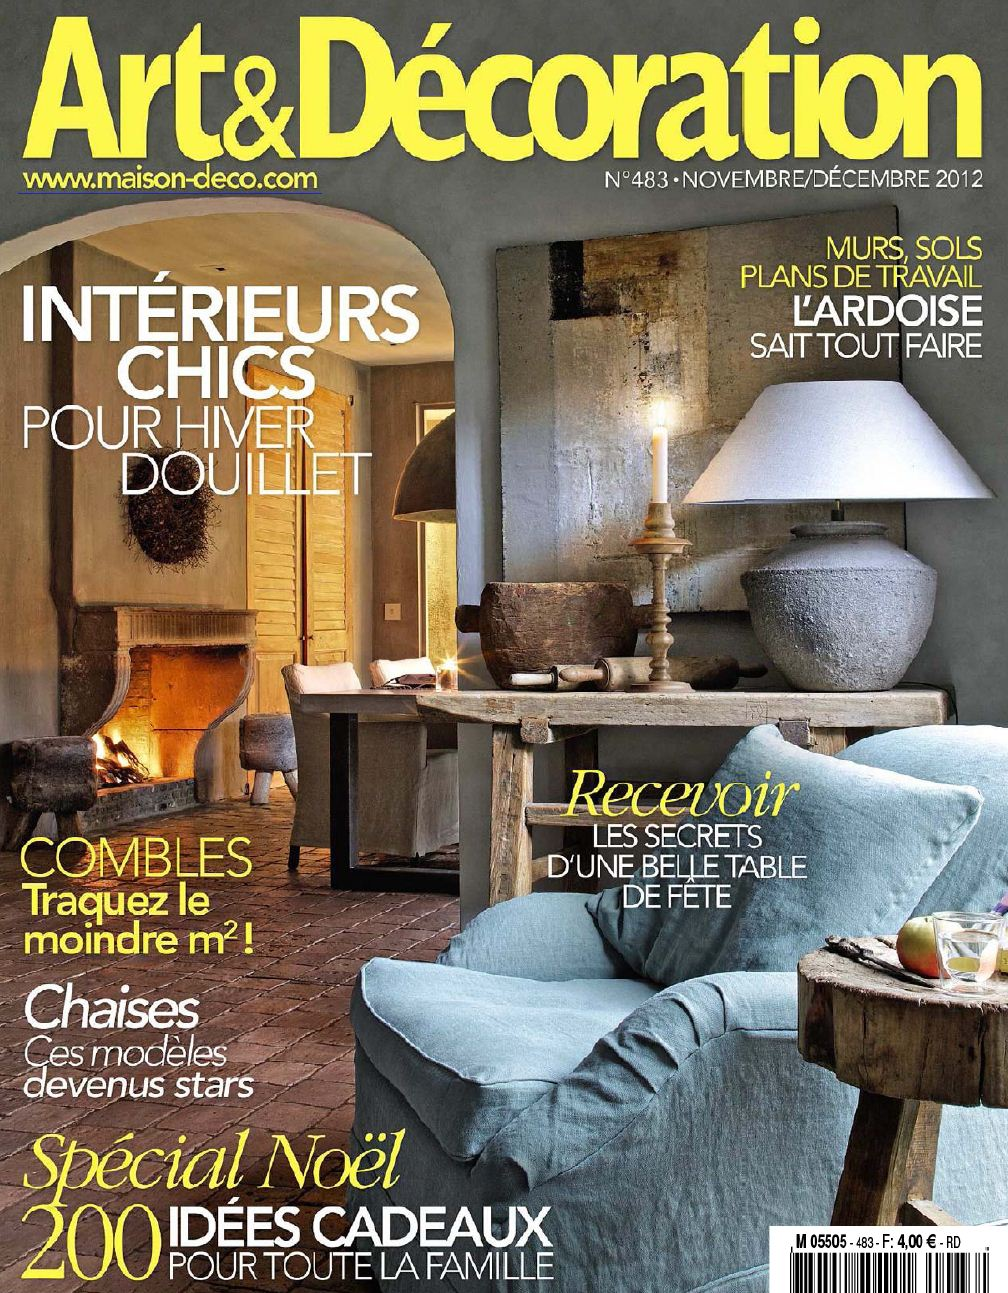 Un int rieur moderne des id es dans un magazine d co for Art et decoration magazine feuilleter